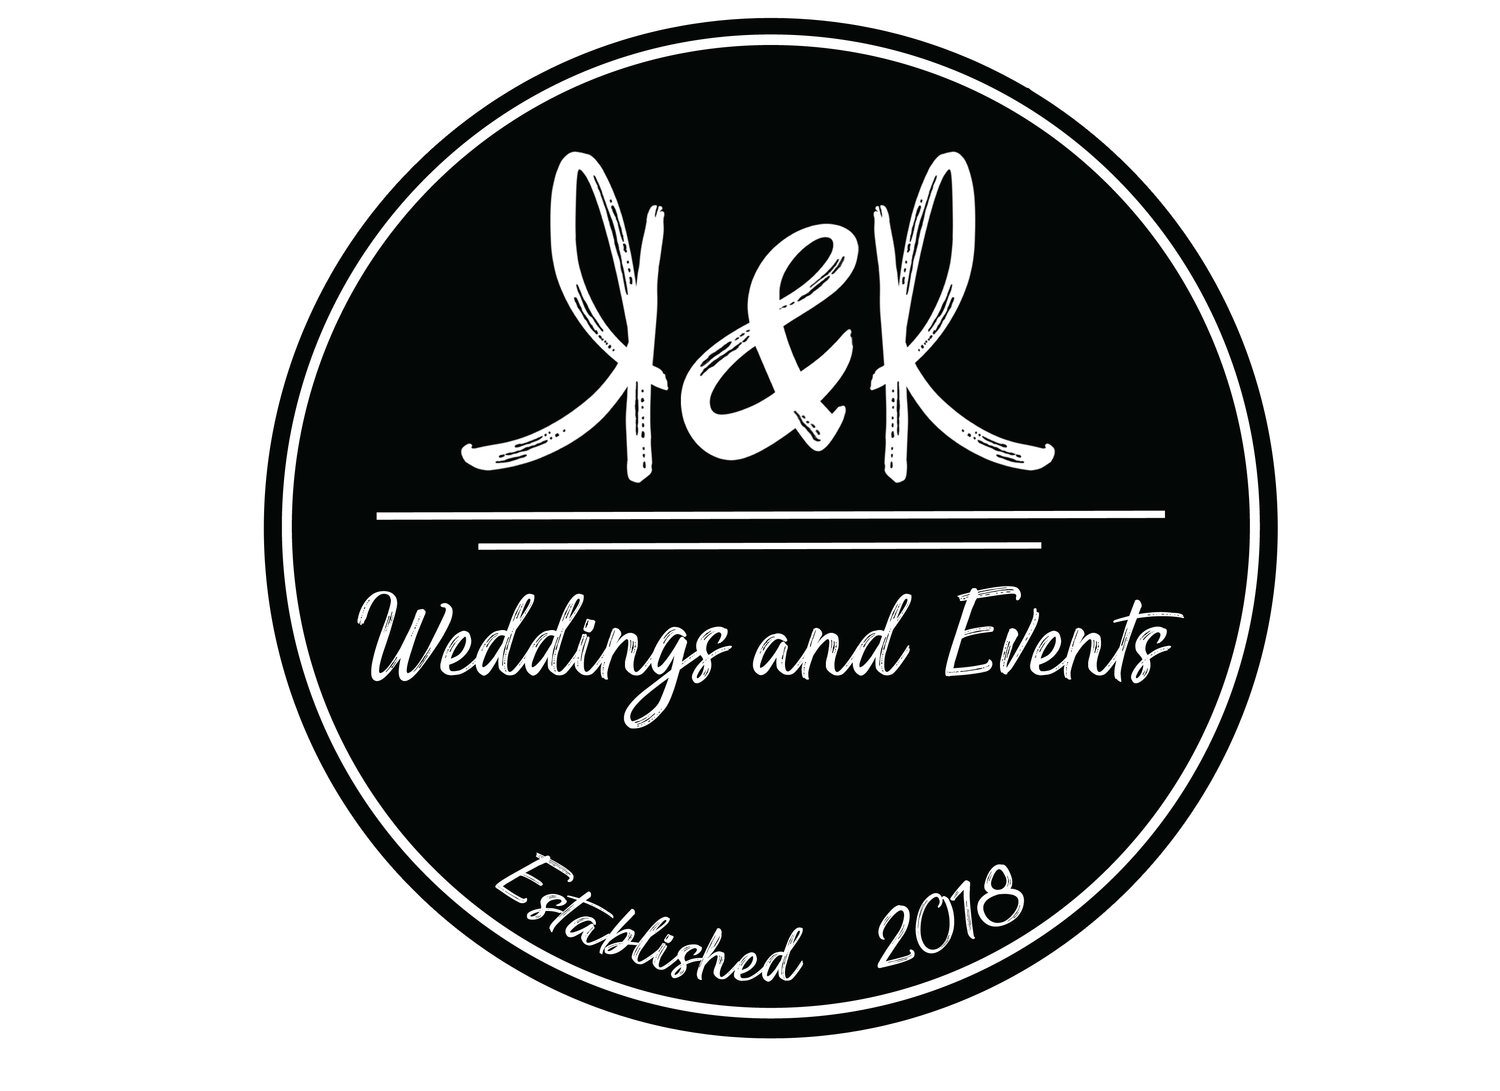 R&R Weddings & Events Vicksburg MI